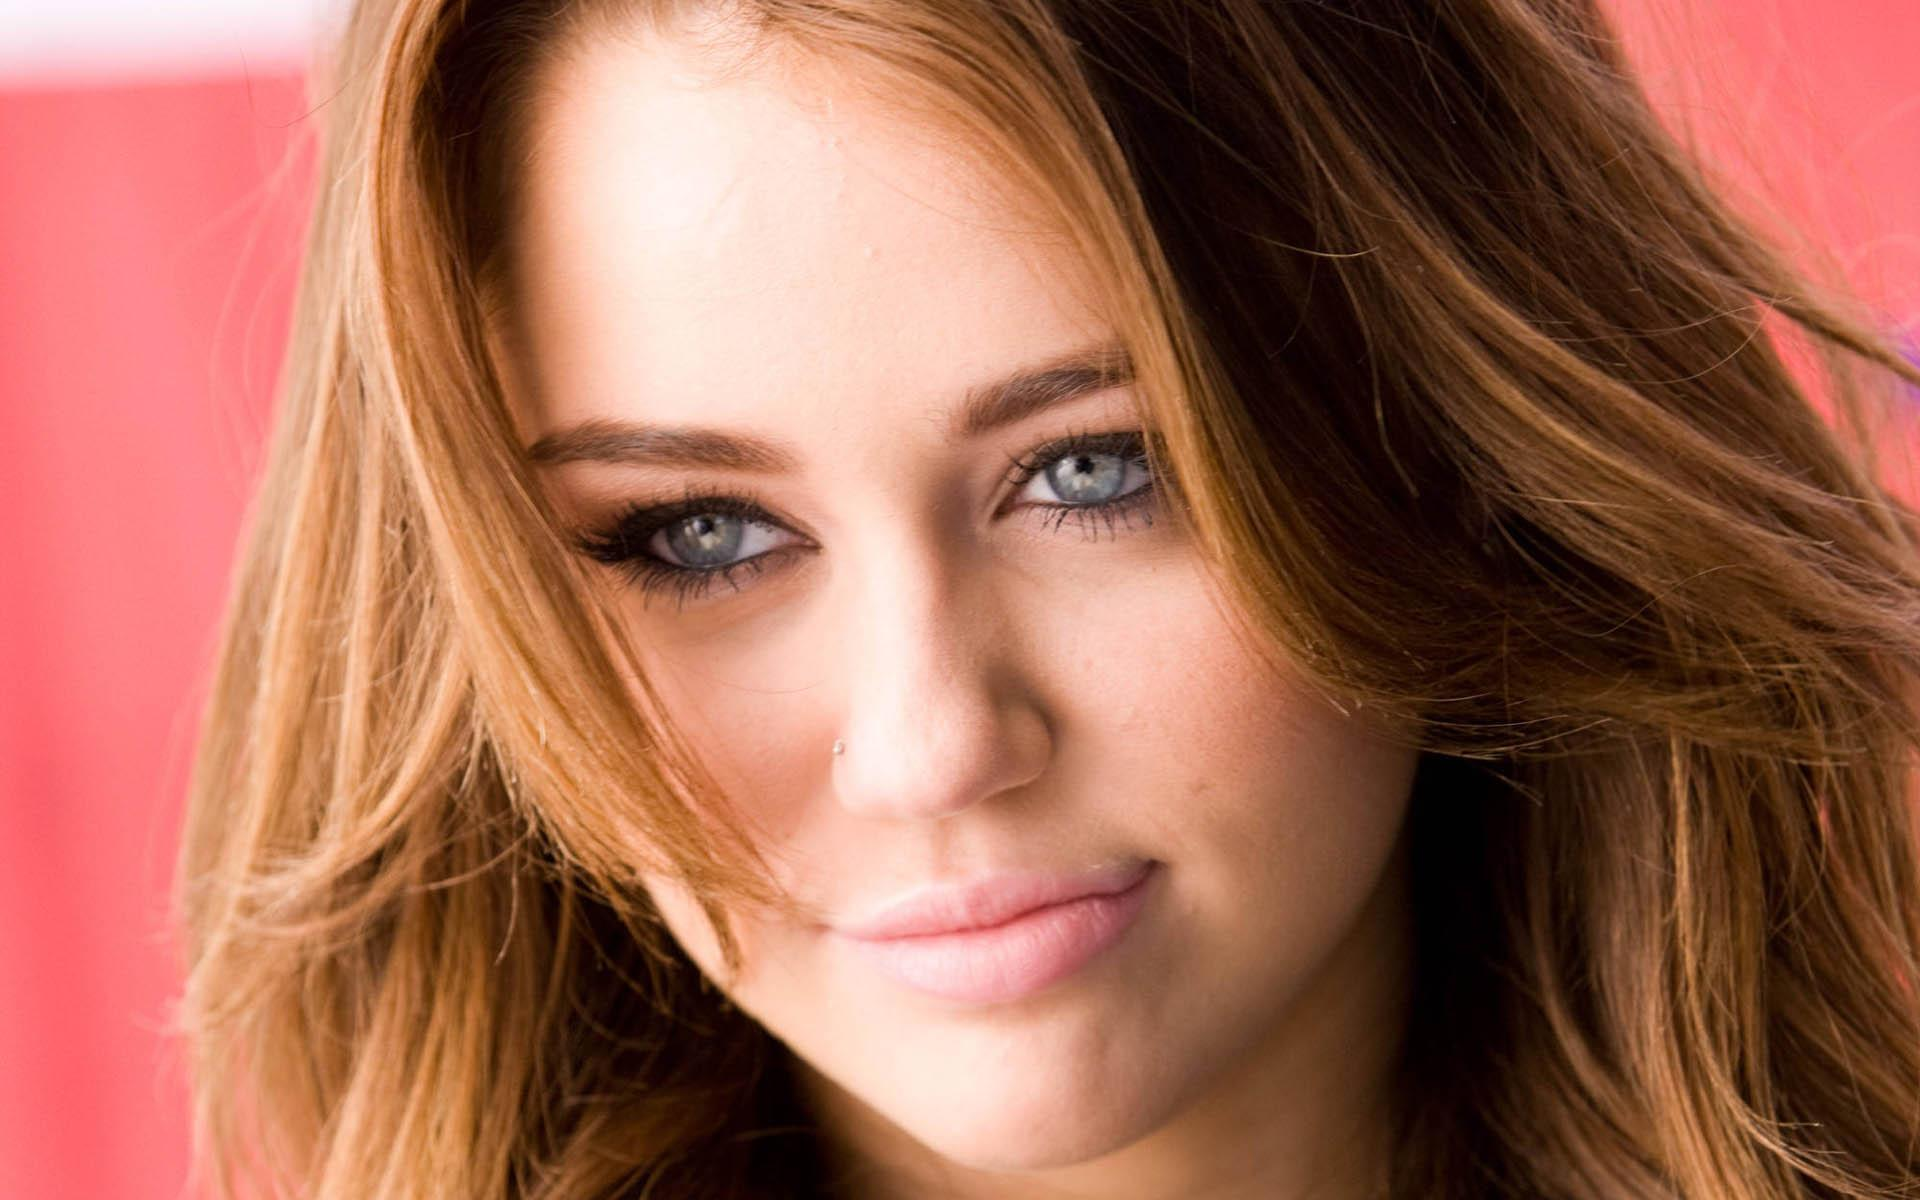 Miley Cyrus Wallpaper Miley Cyrus Female celebrities Wallpapers in